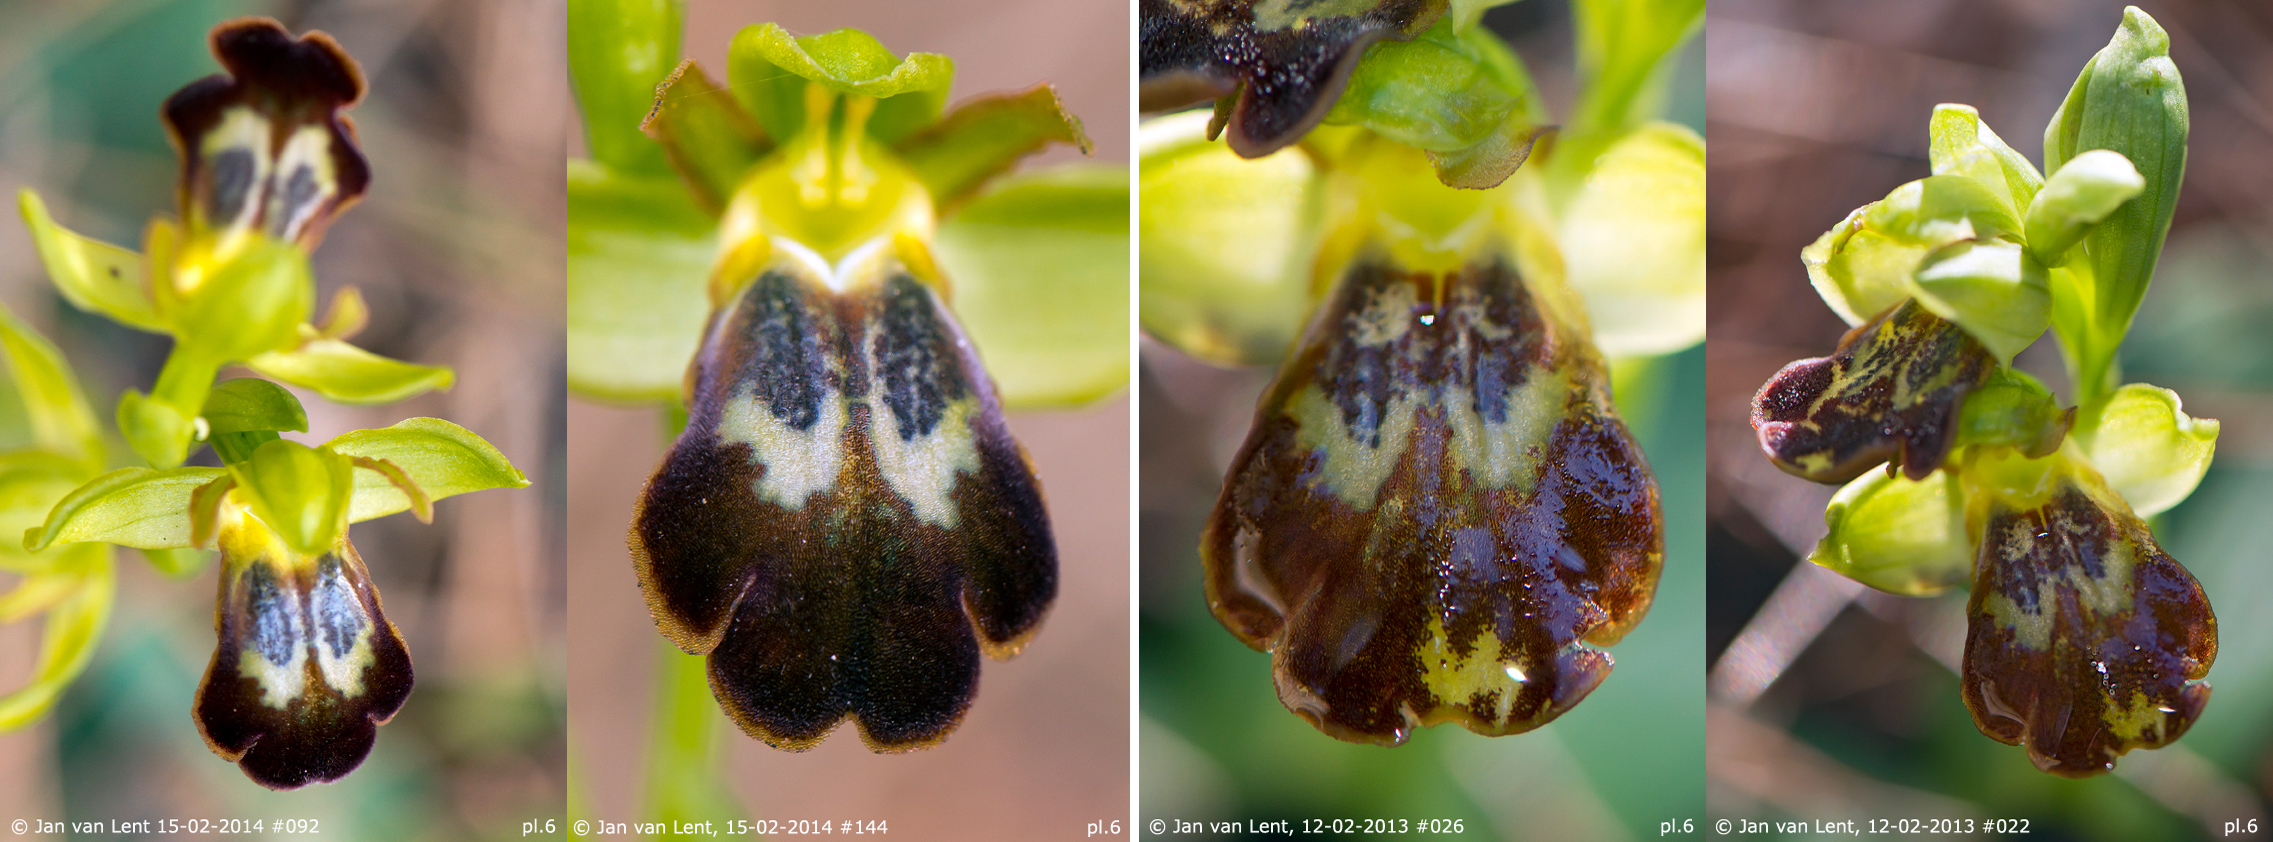 Pl. 6: Ophrys phaseliana on 15-2-14 #092, #144 & Ophrys phaseliana on 12-2-13 #026, #022.